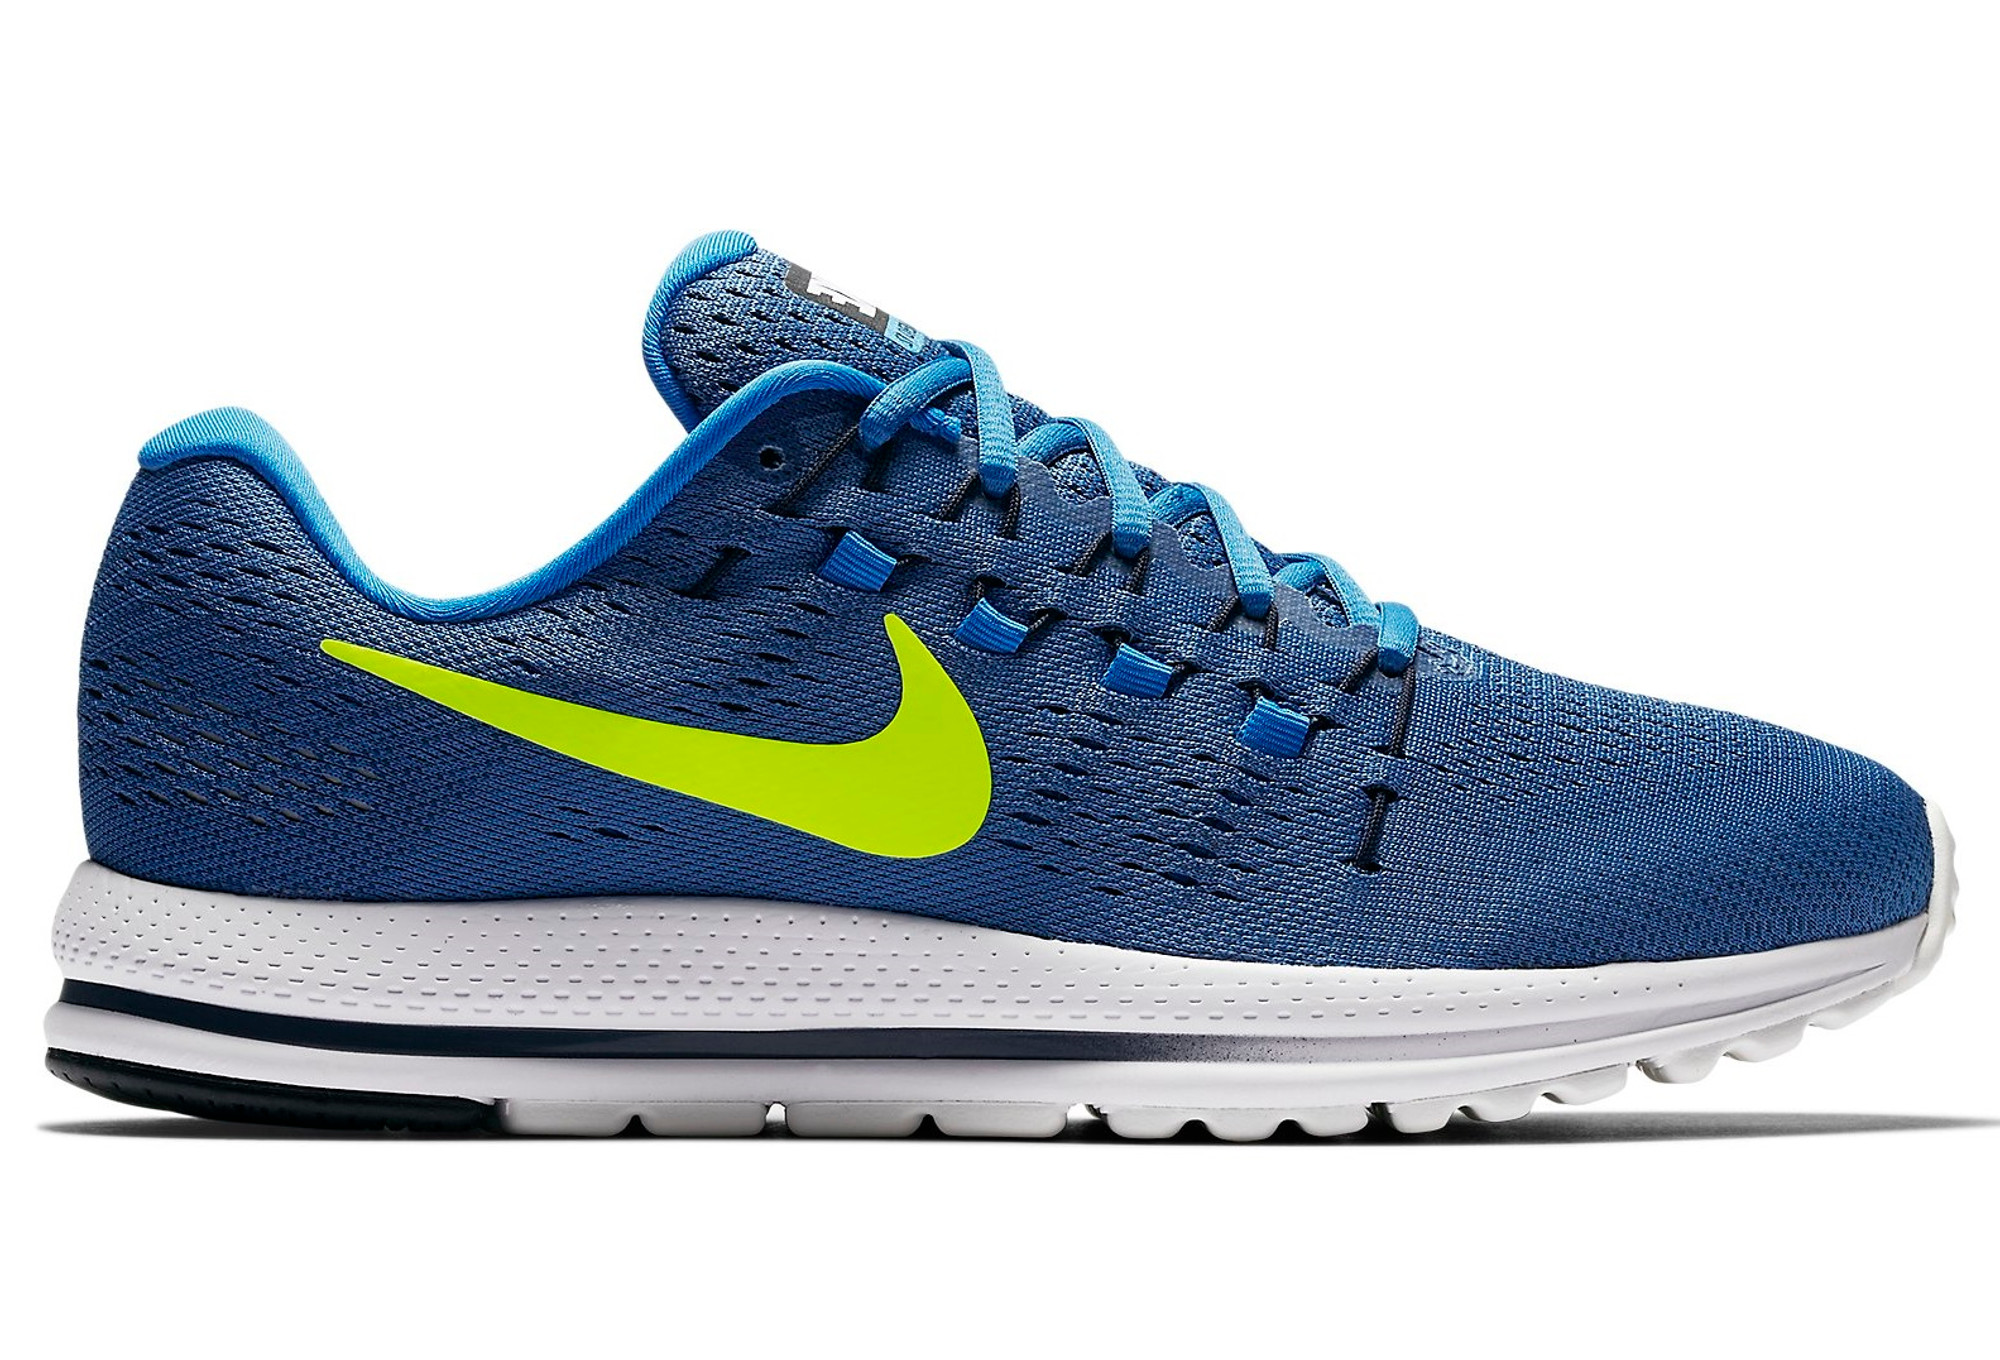 huge discount 05adc df4e4 Chaussures de Running Nike Air Zoom Vomero 12 Bleu